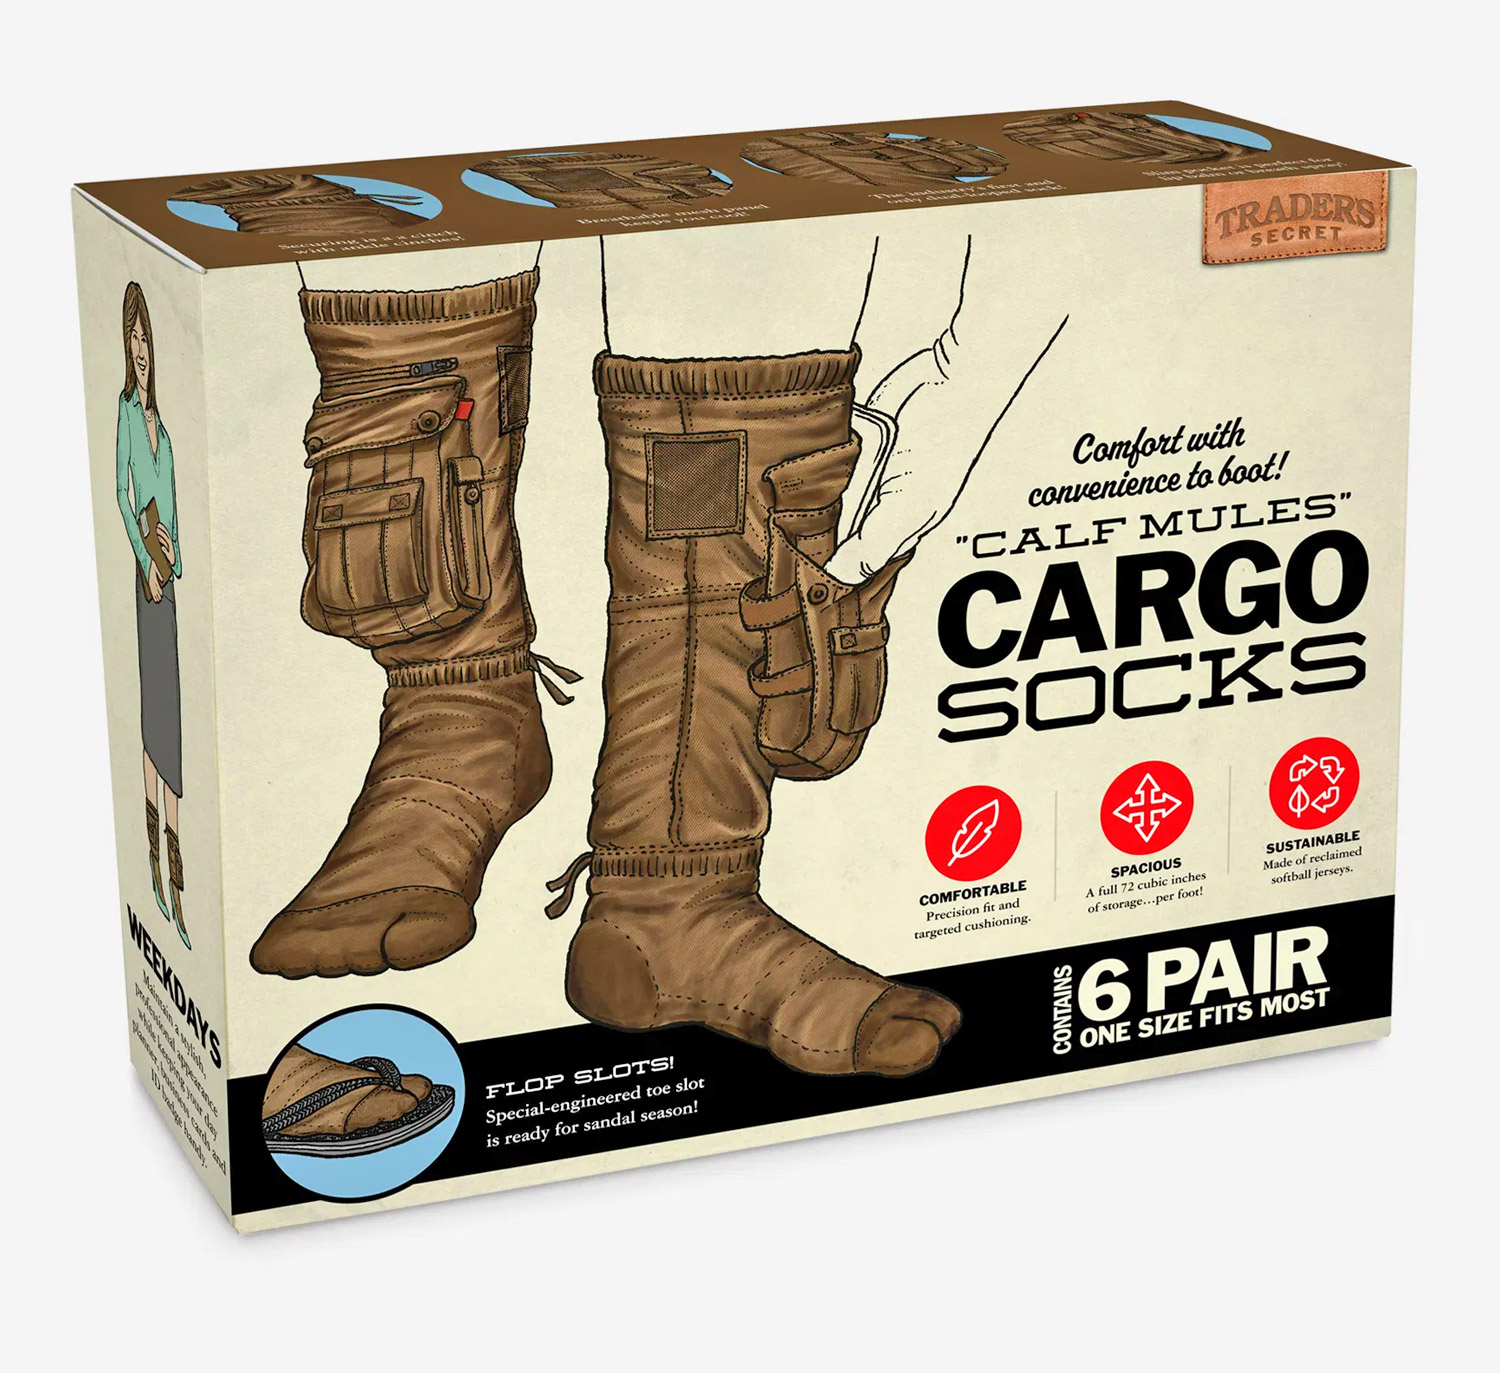 Cargo Socks Are Now A Thing, So You Can Hold Your Phone, Snacks, Or Cash Right in Your Sock Pocket